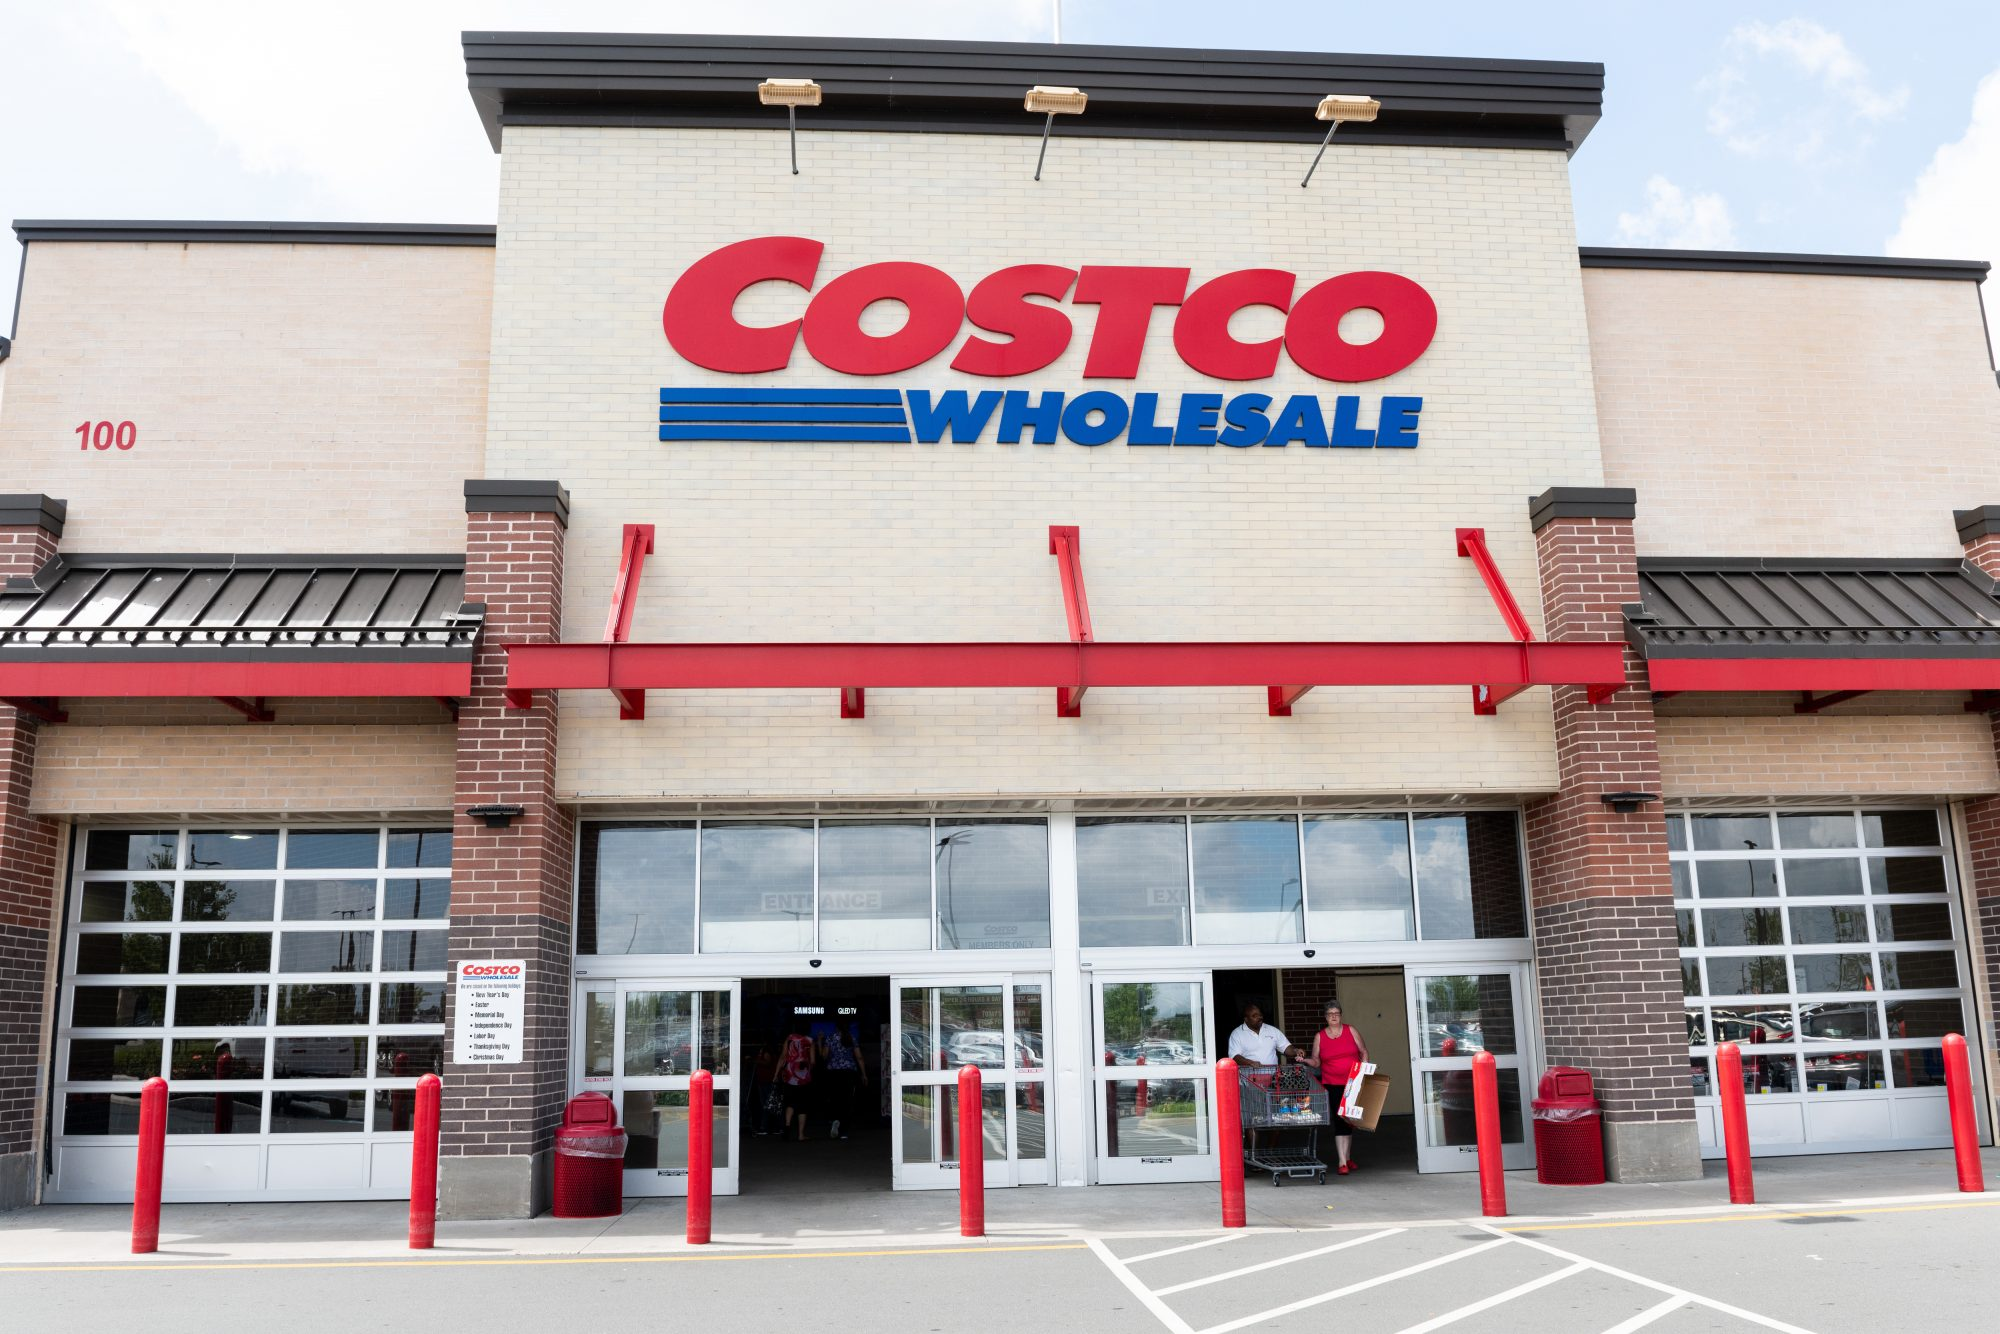 Costco Sells a $500 Leg of Ham. Here's Why That's Actually a Really Good Deal